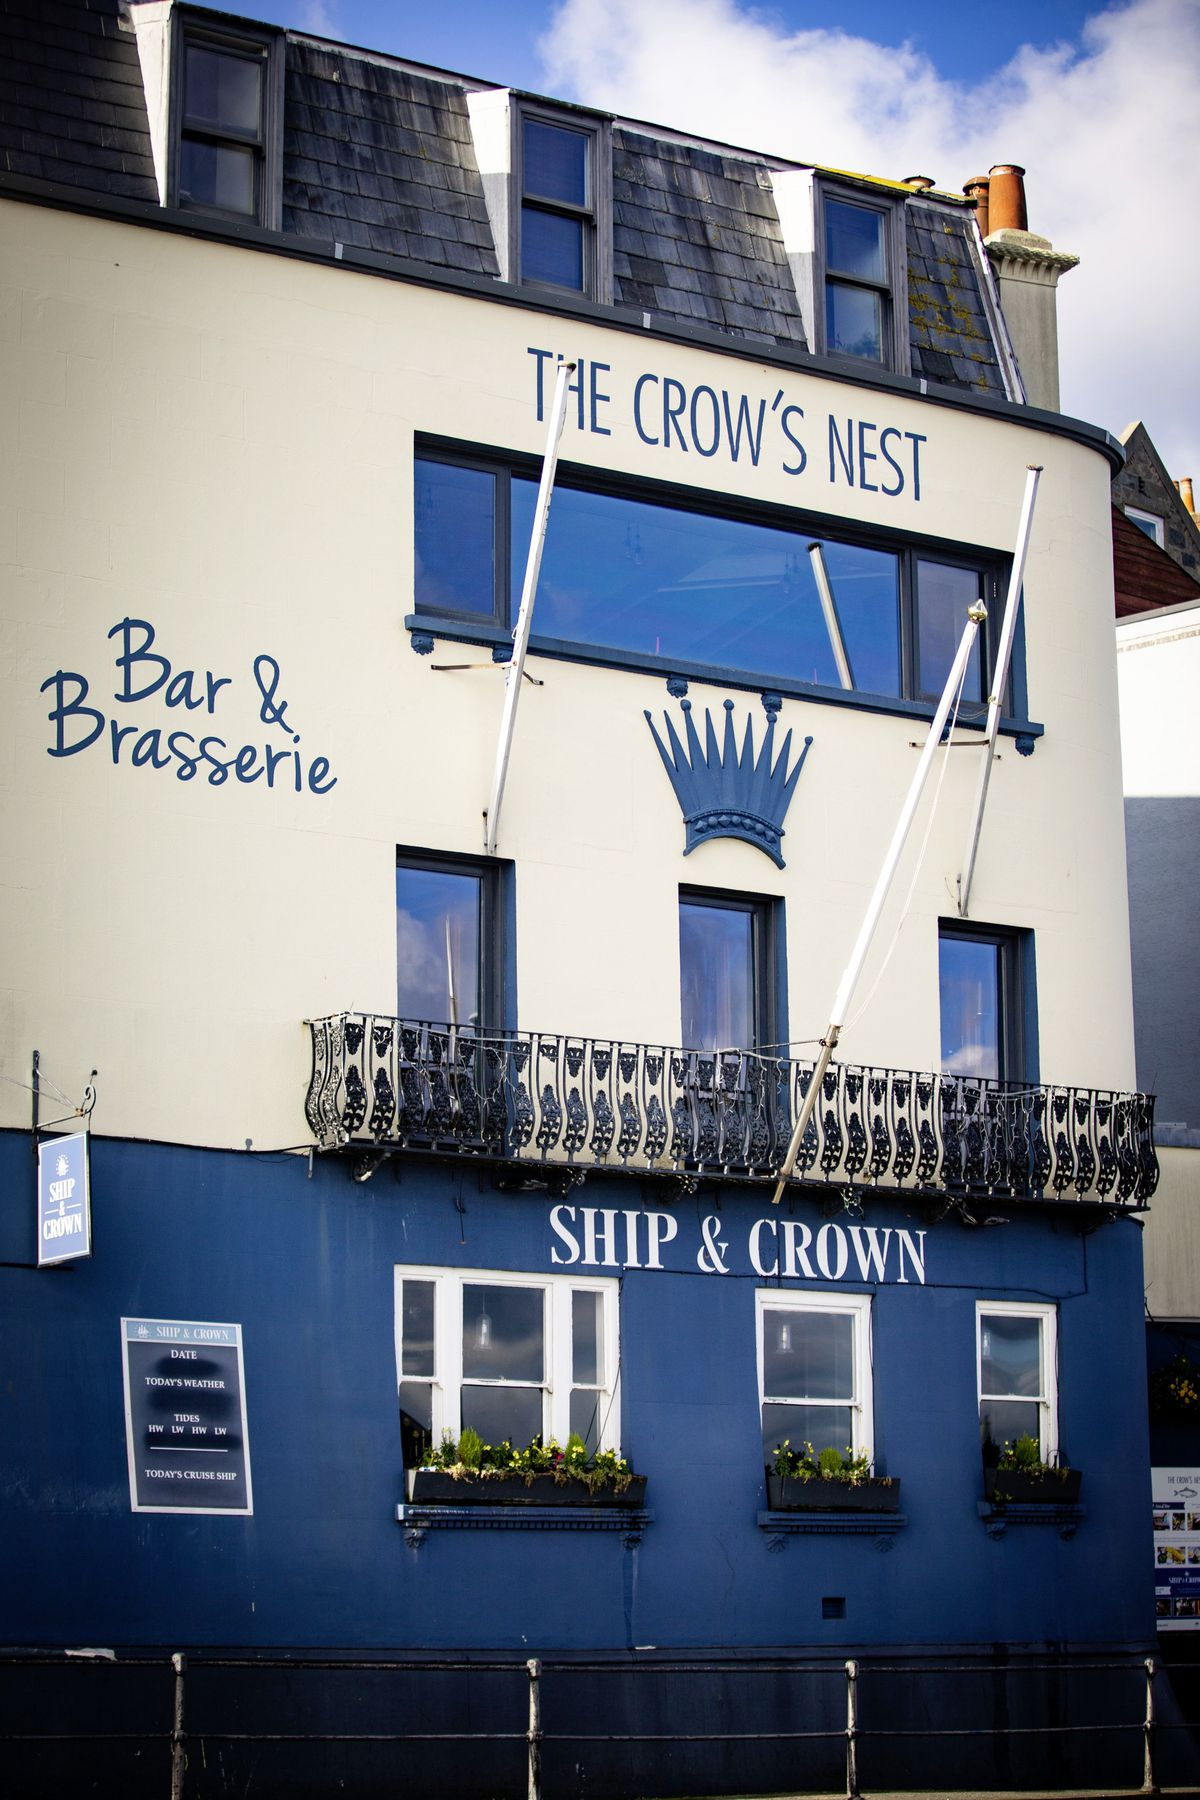 The Ship & Crown and The Crow's Nest. (29154805)